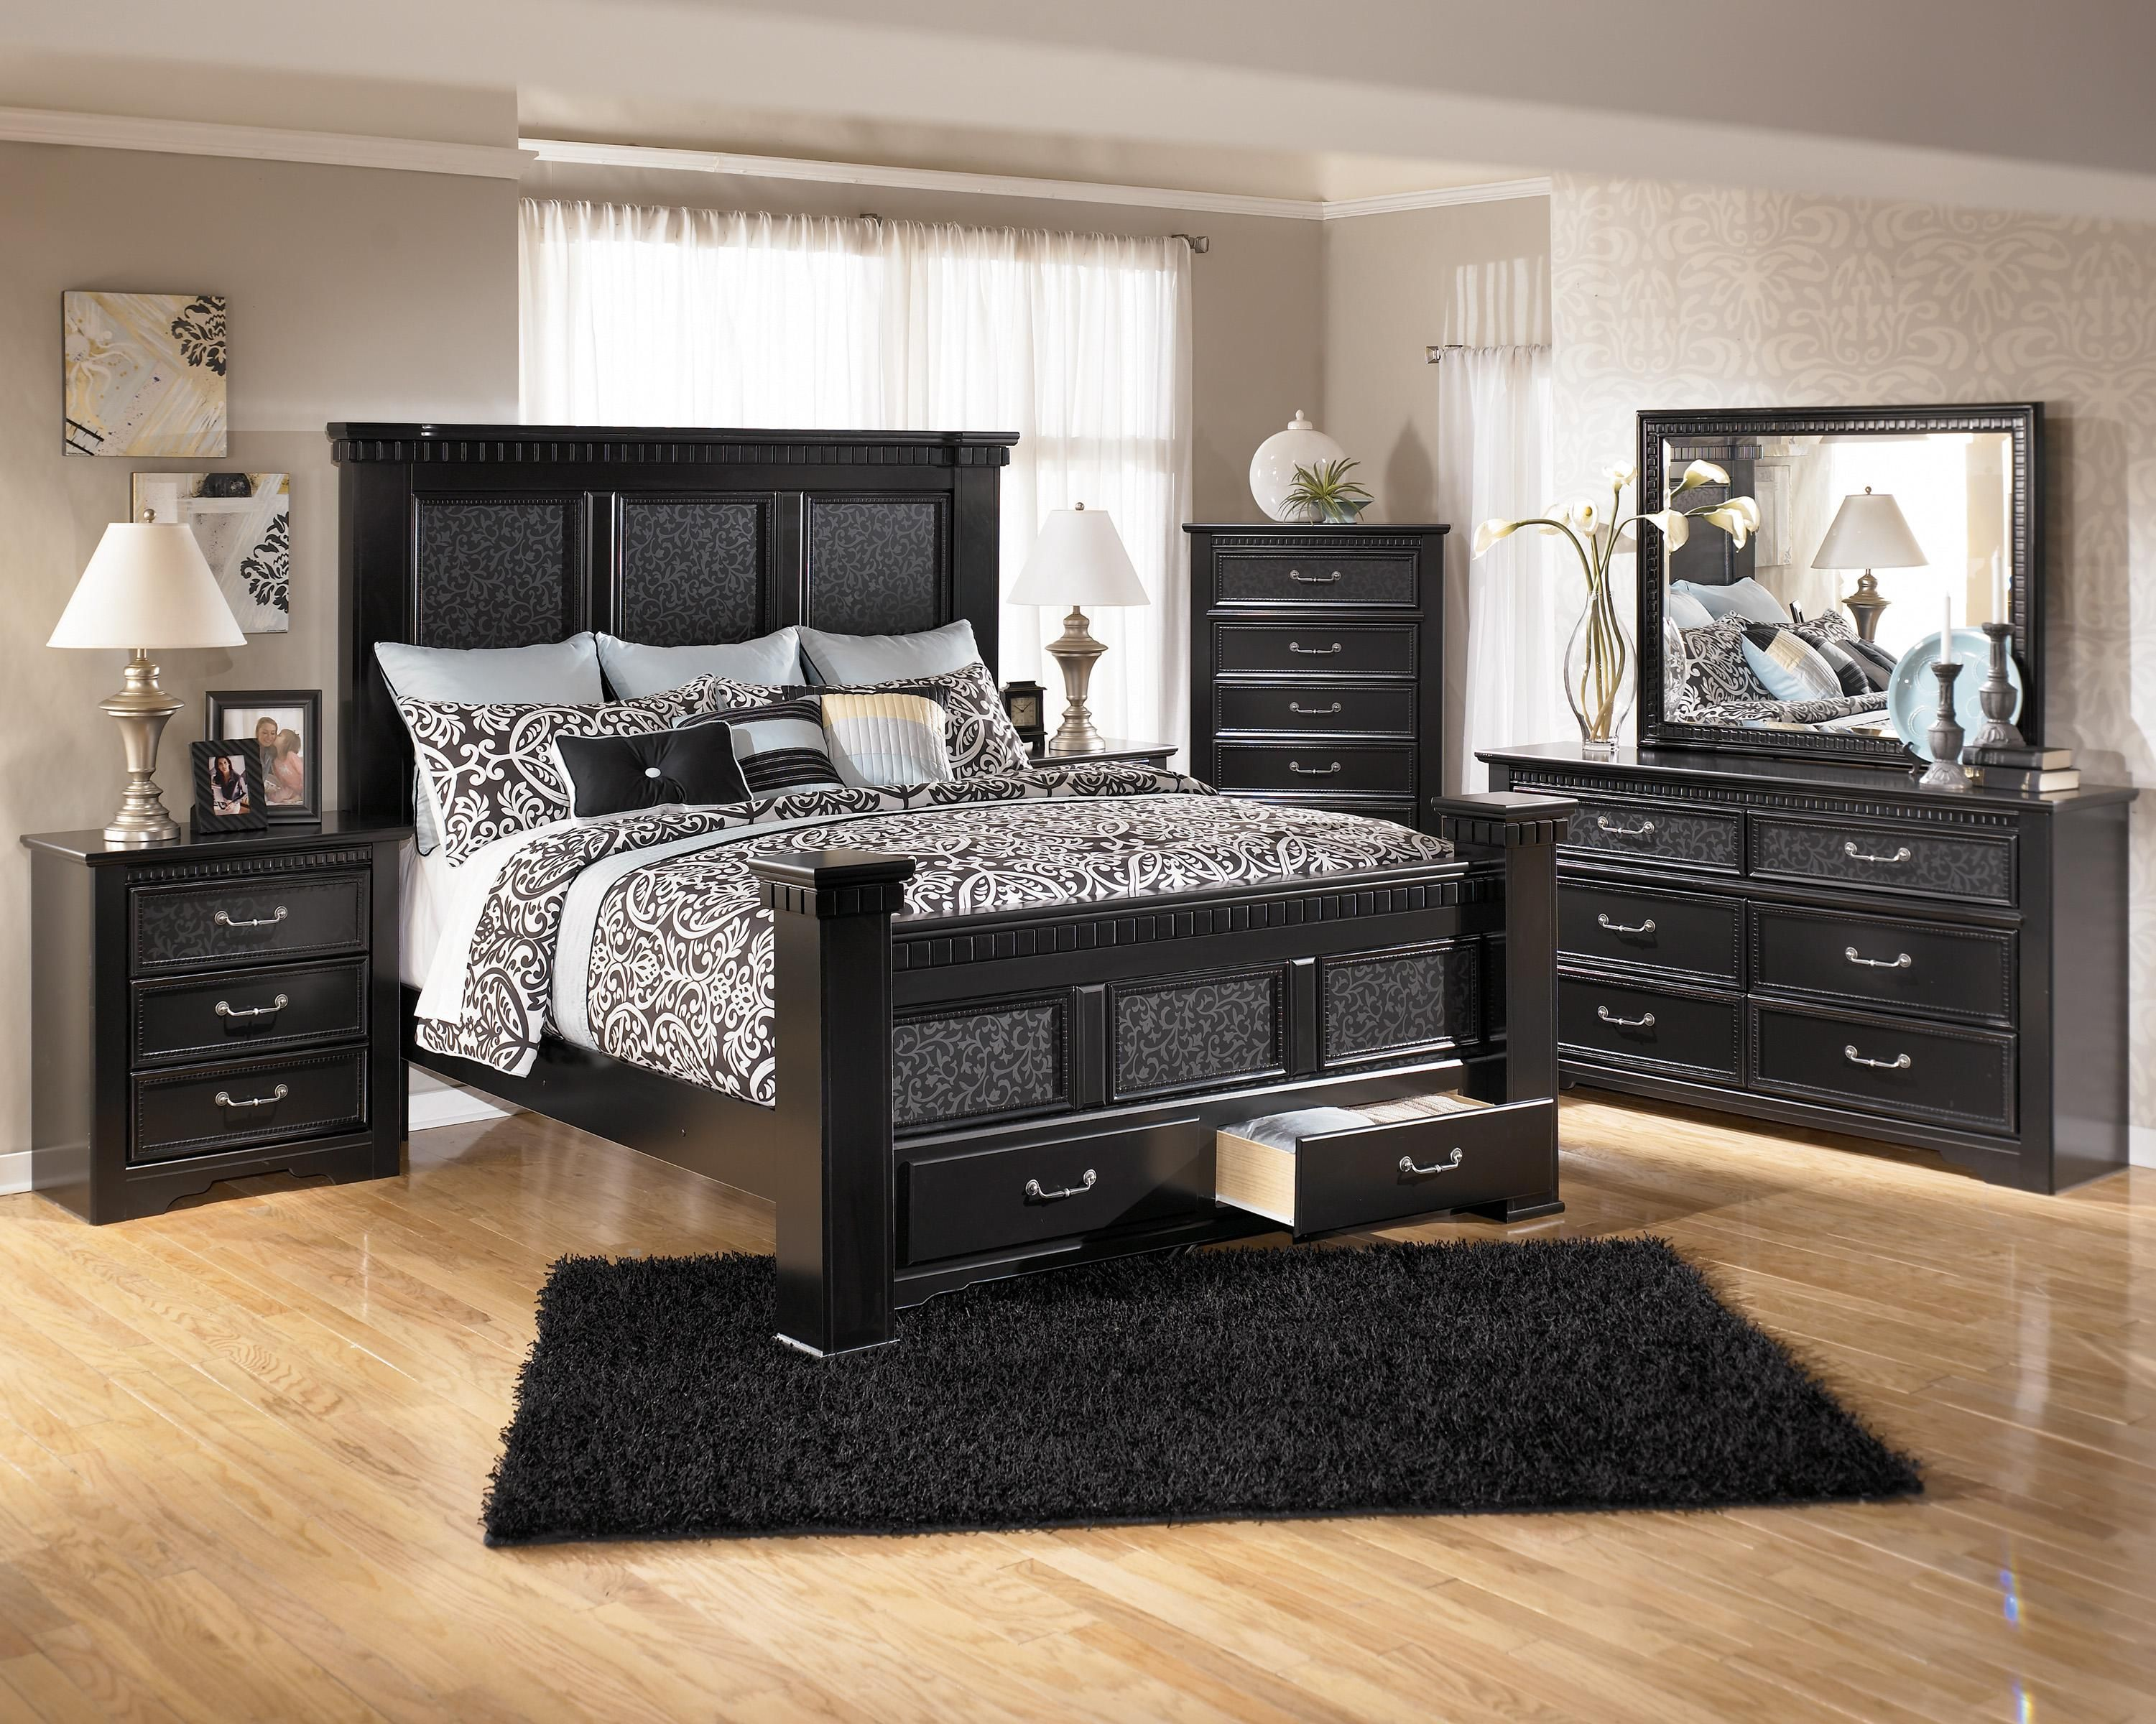 Bedroom Set Including Mattress Ashley Furniture Cavallino Bedroom Set With Mansion Poster